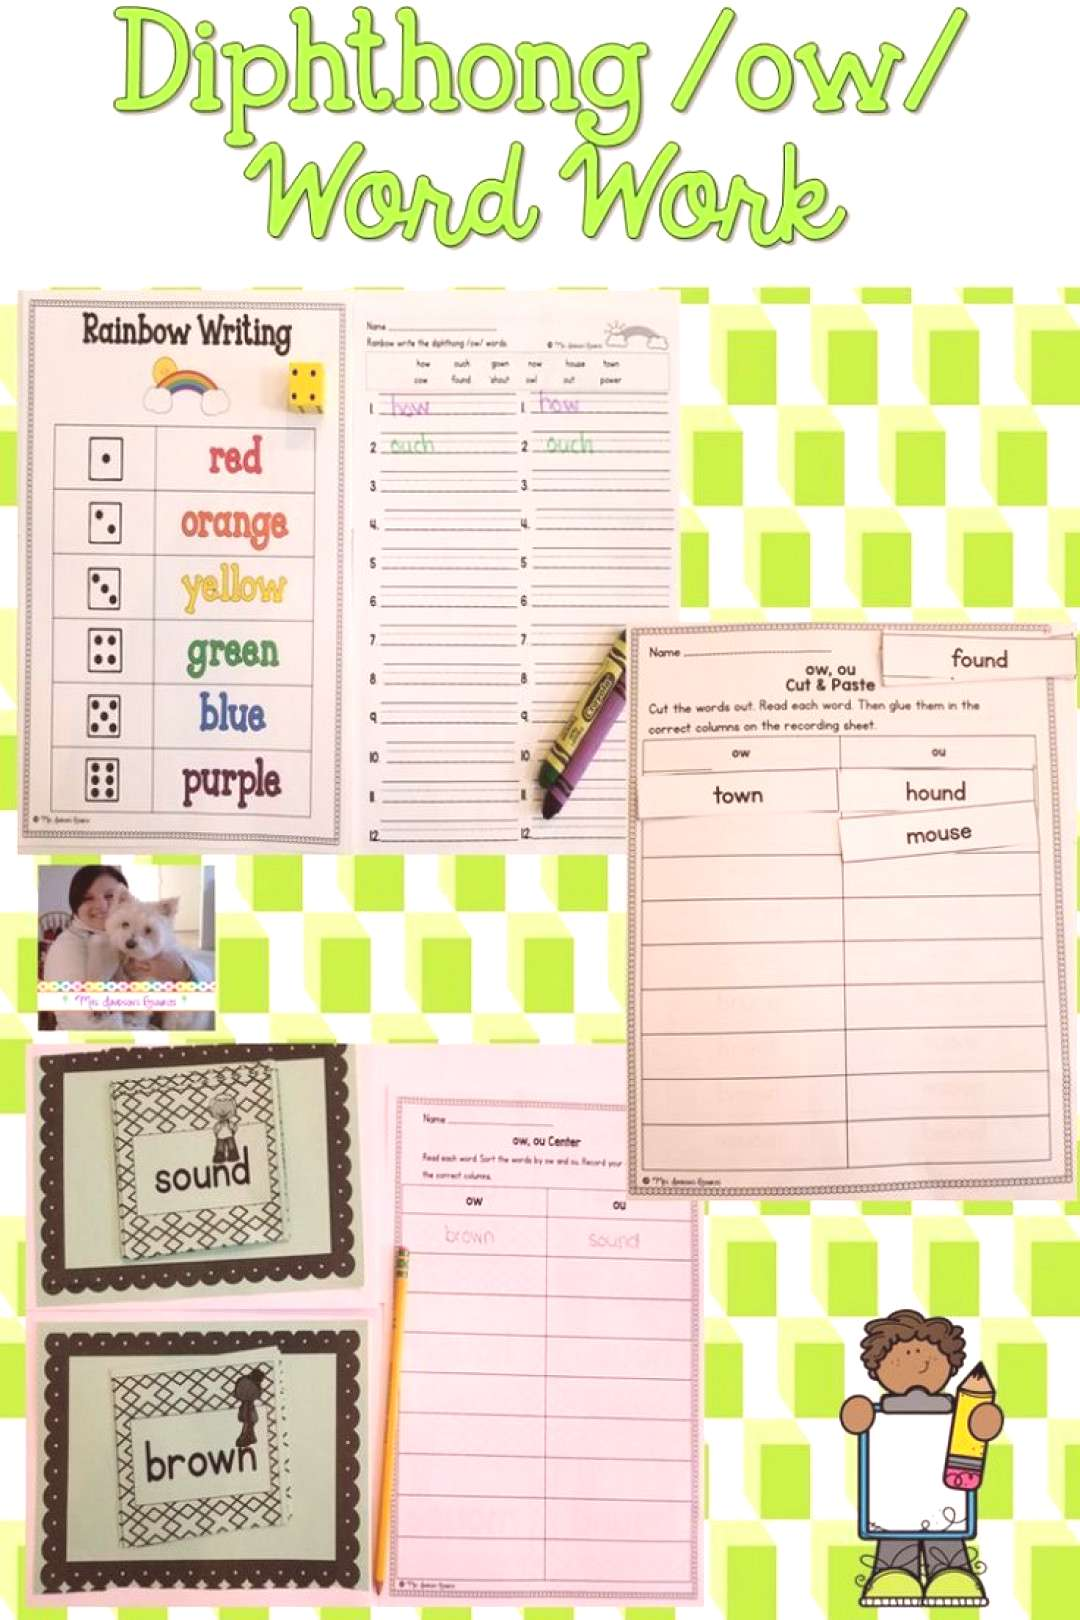 Diphthong ow Word Work These hands-on and engaging diphthong /ow/ word work activities will help st